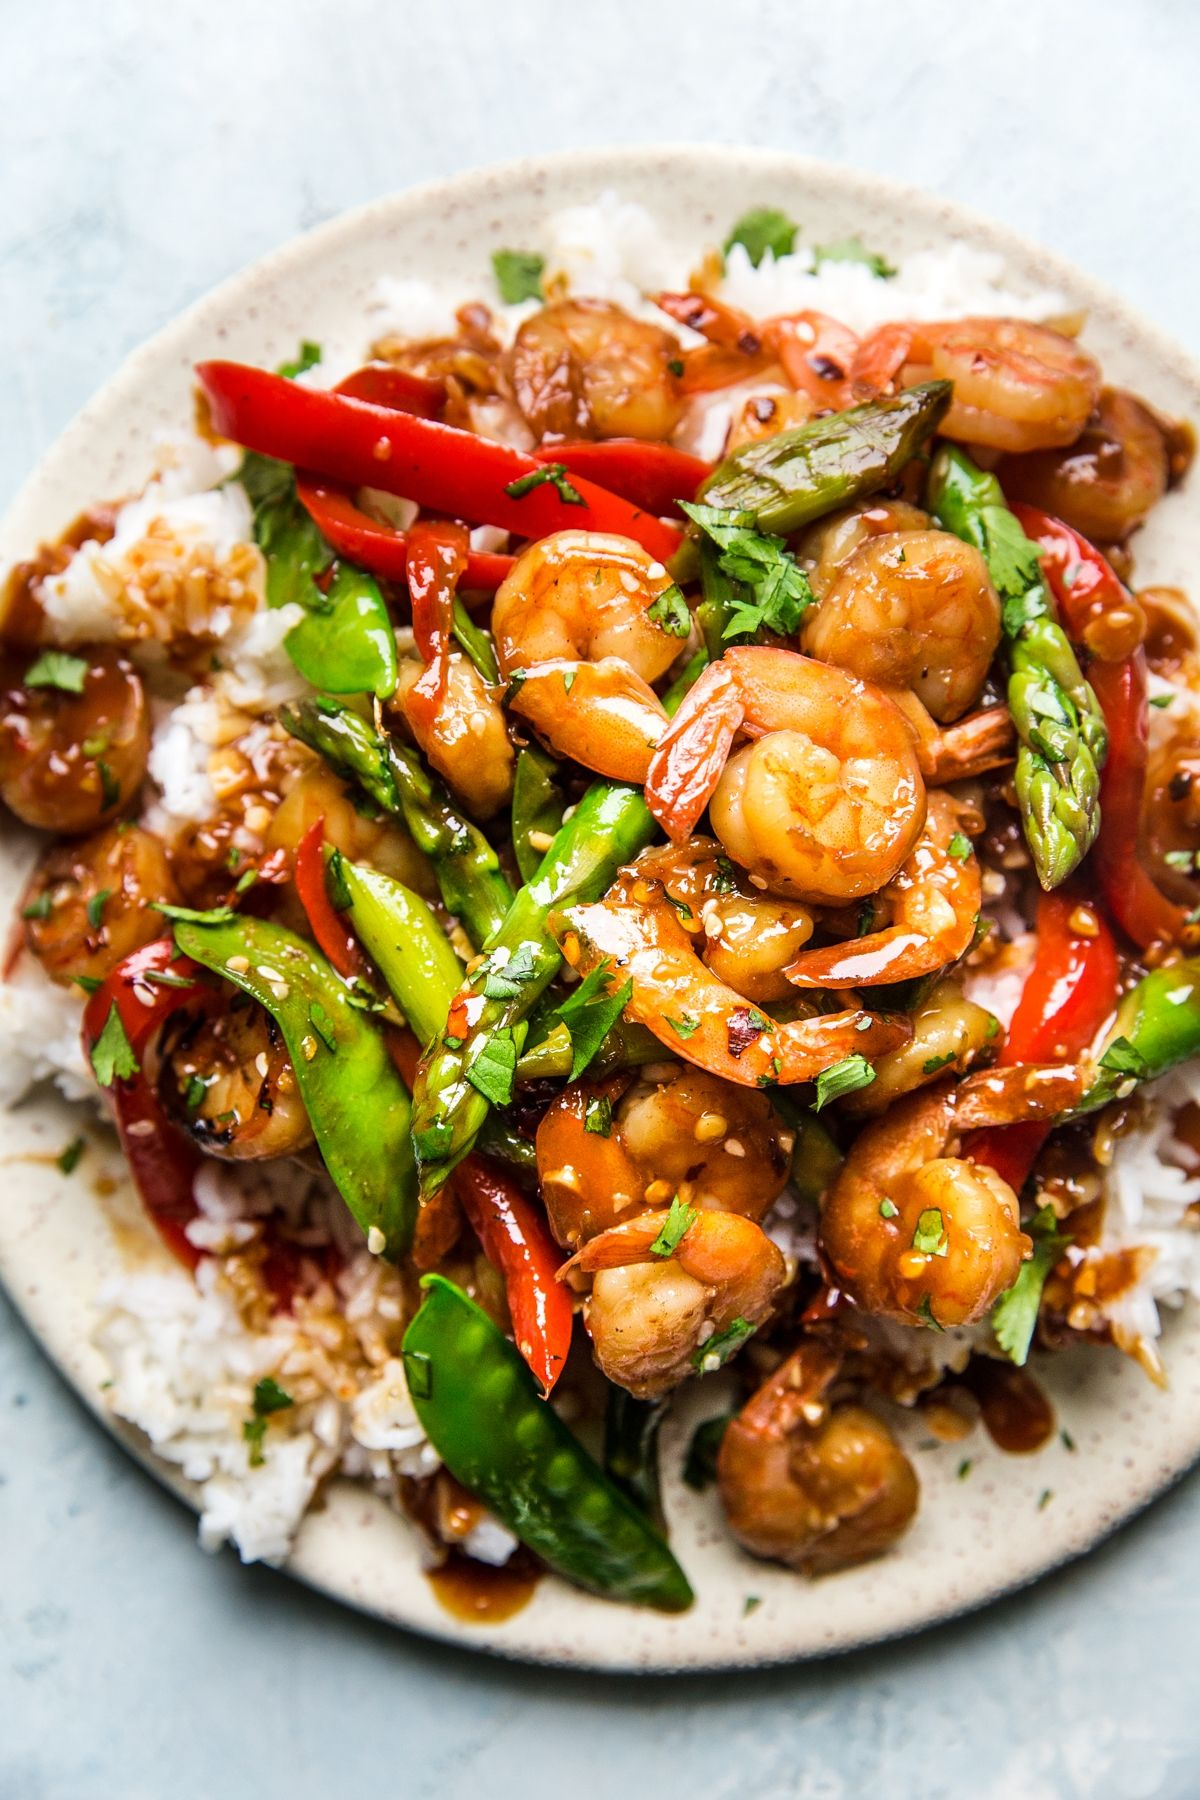 Garlic Shrimp Stir Fry | The Modern Proper